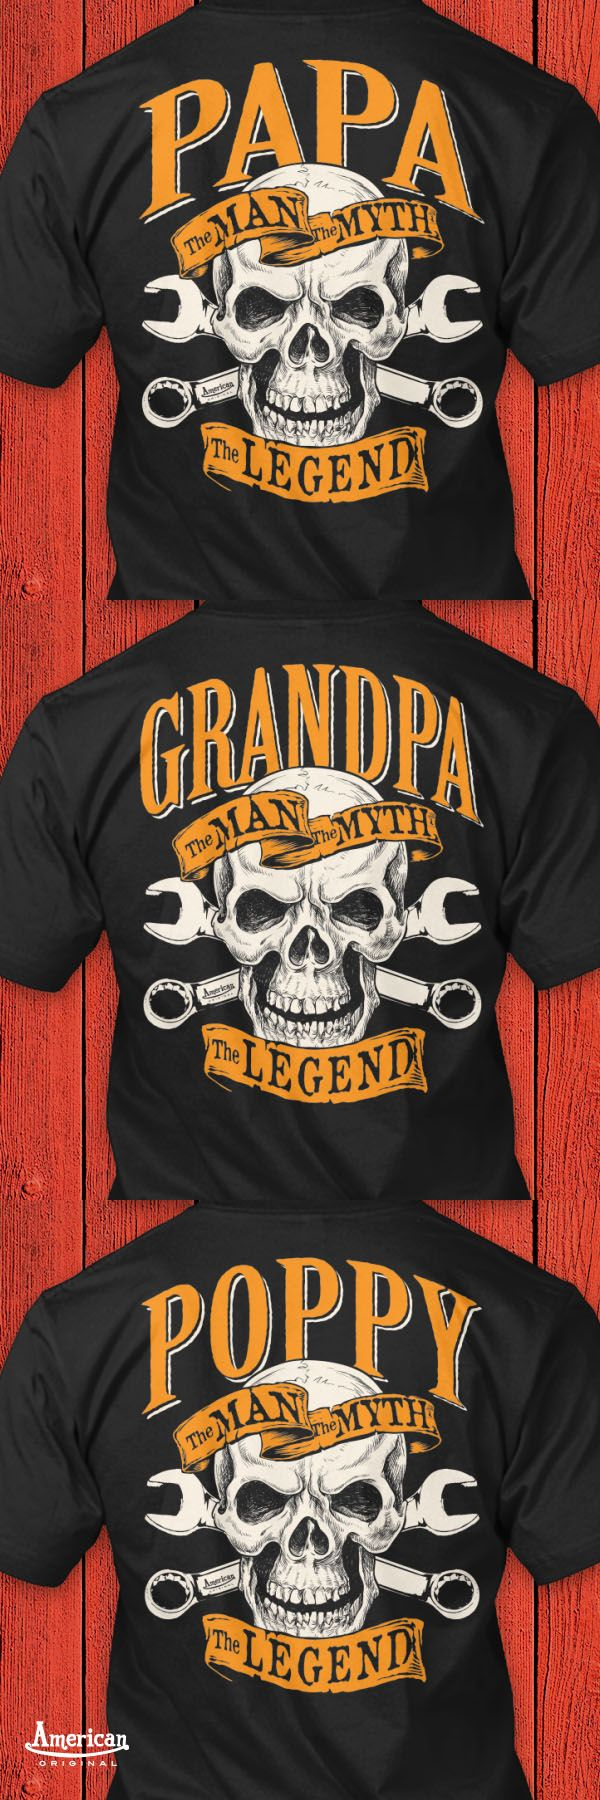 Order them right here http://teespring.com/stores/the-legend-2 Just in time for Fathers Day. A sure hit for any Harley riding, wrench spinning, hot rod building dad or grandfather. Perfect if he's hanging out in the man cave or riding with friends he'll be loving that you call him the legend. We have Papa, Dad, PawPaw, Pops, Pop Pop, Poppy, PaPaw, Grandpa, Daddy, Pappy, Pop, Pa, Poppa, Opa, Grampy and Gramps. Order here http://teespring.com/stores/the-legend-2